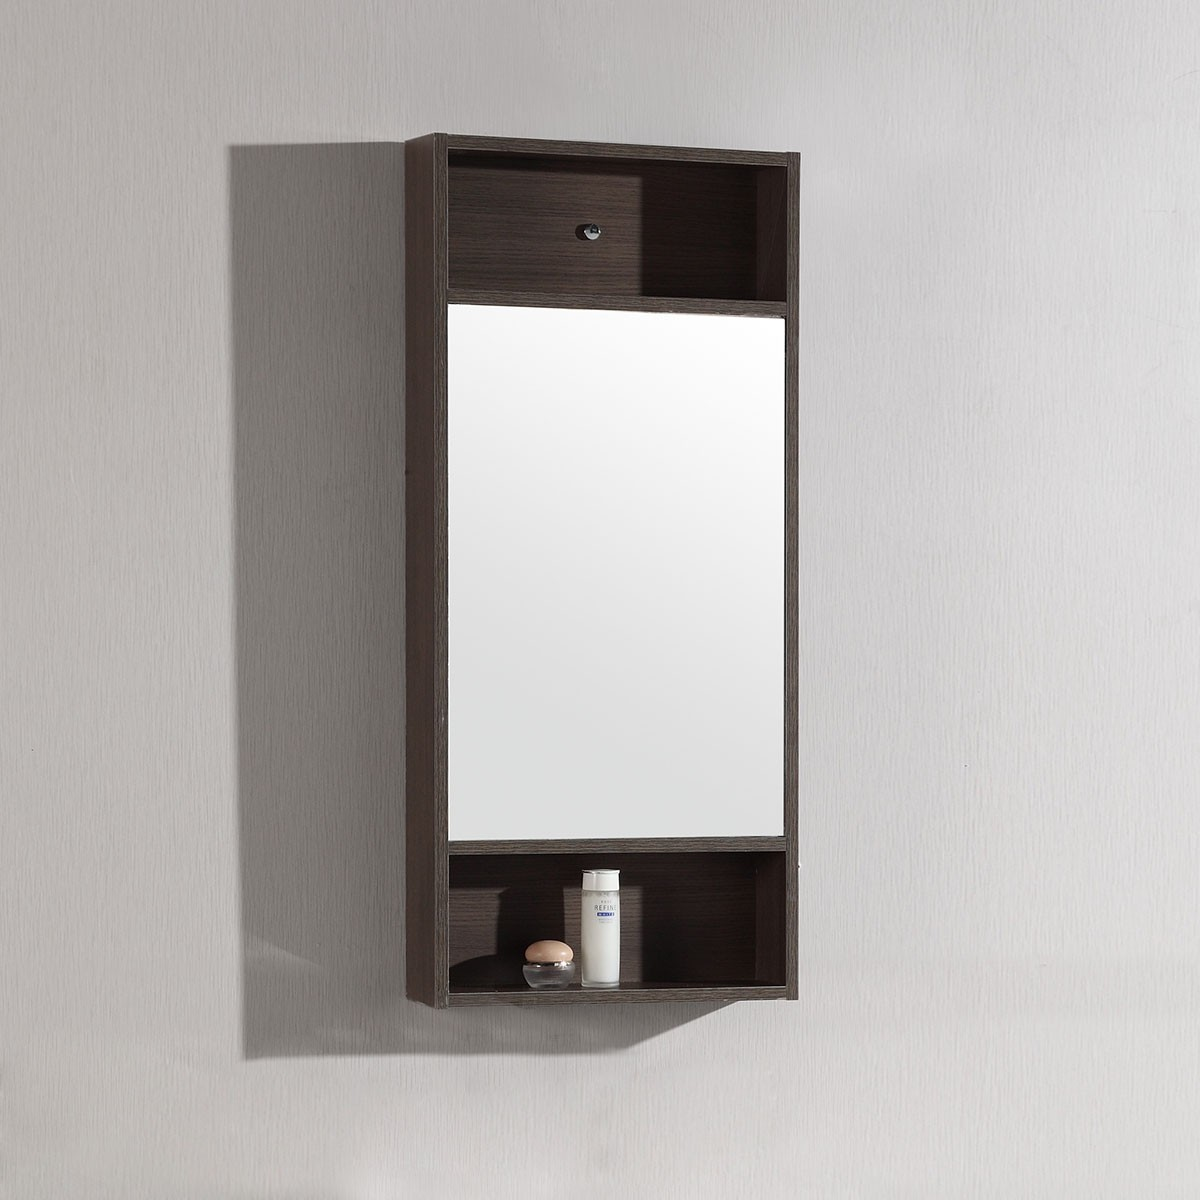 18 x 28 In. Mirror with Brown Frame (DK-TH20160A-M)